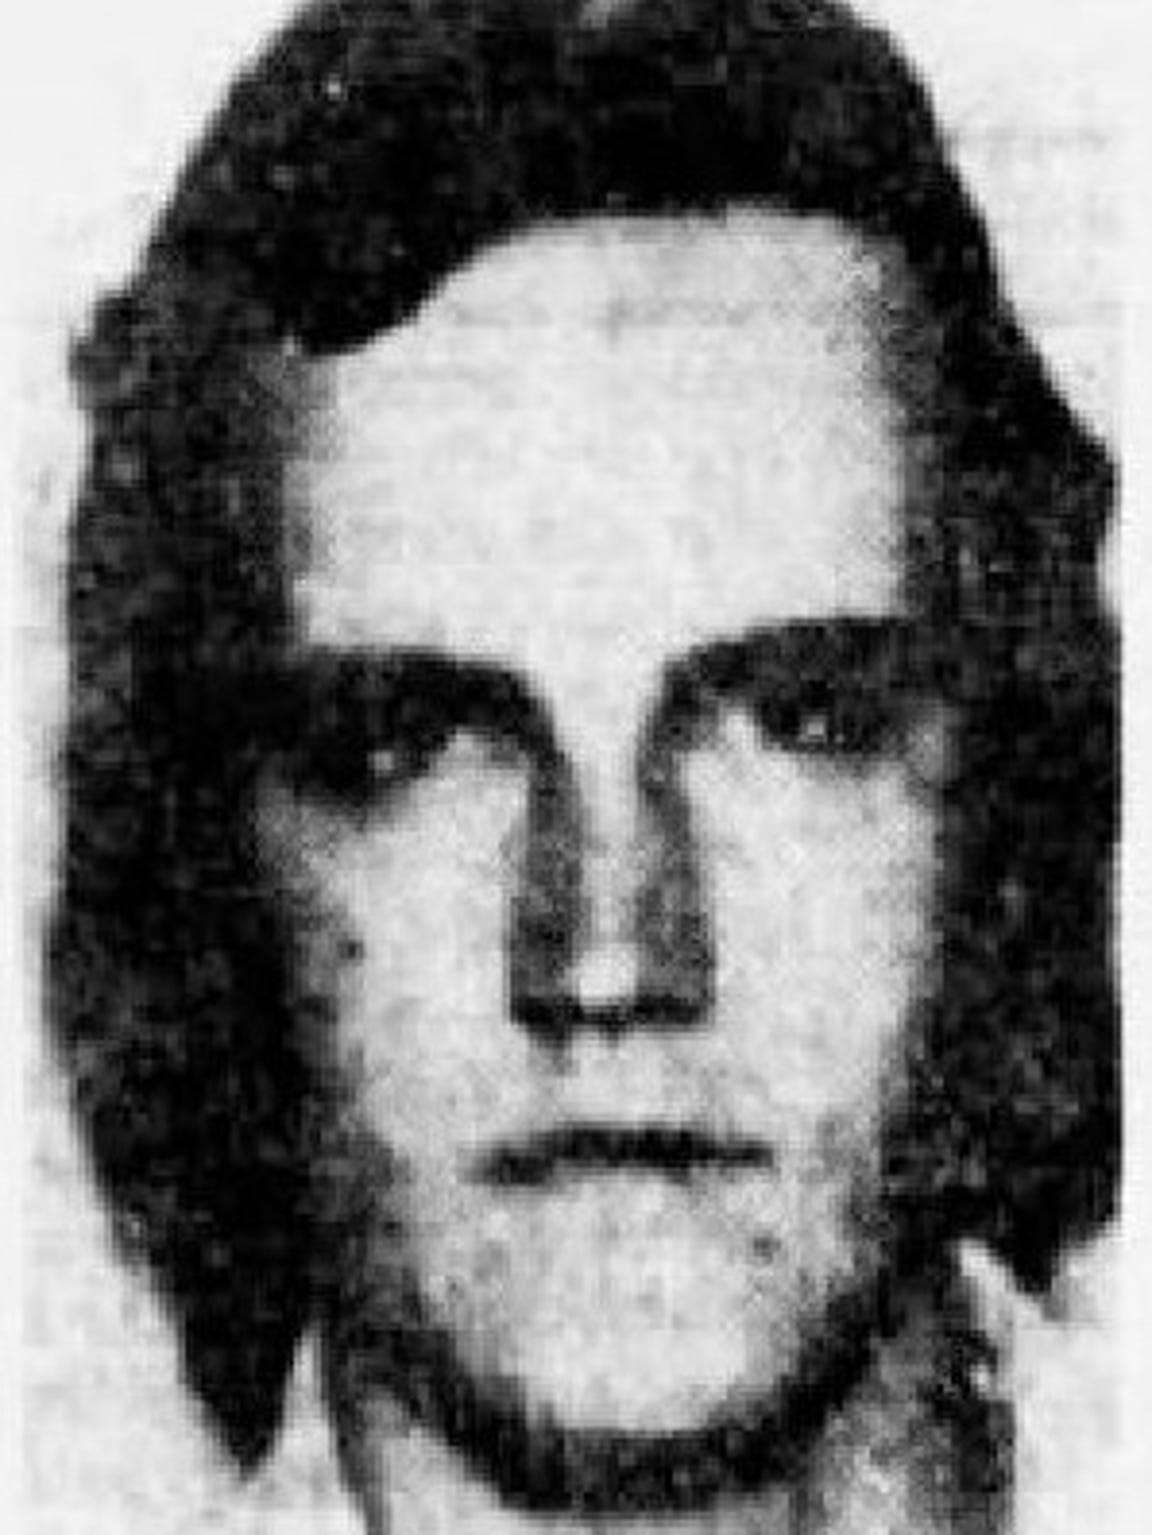 A mugshot of Raymond Tison in an archive from The Arizona